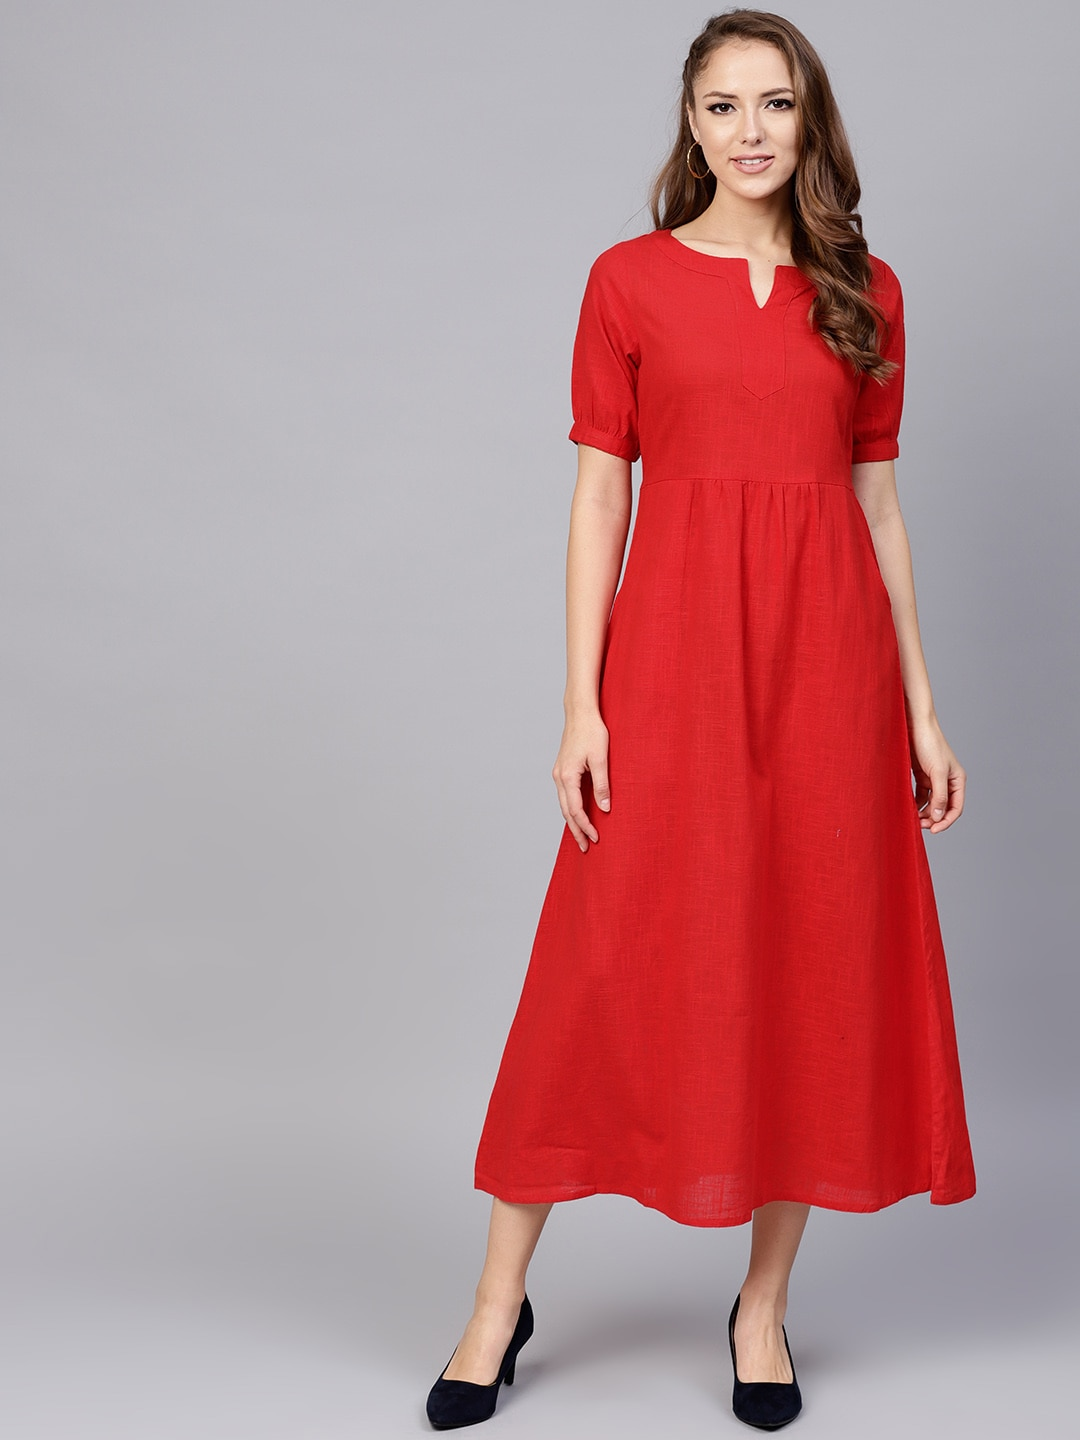 9aa35259304 Red Dress - Buy Trendy Red Colour Dresses Online in India